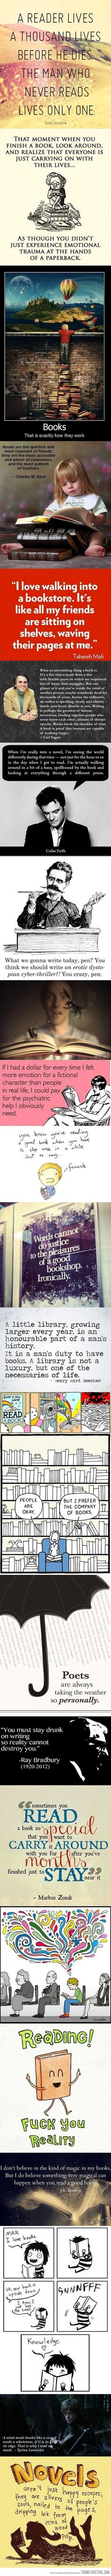 The best things about reading